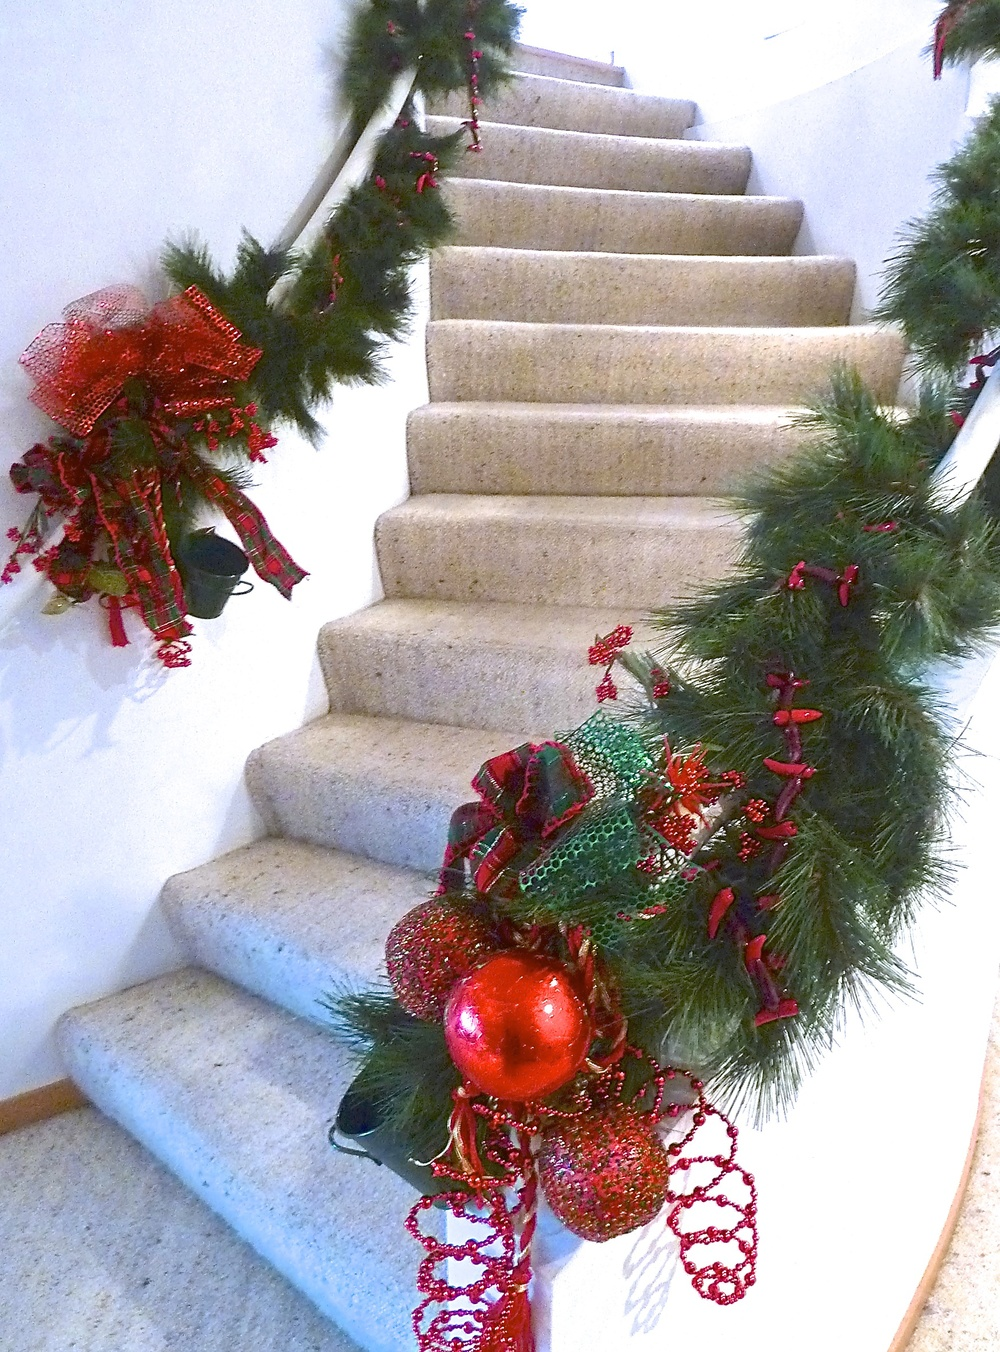 Artificial Christmas boughs can still add spice to the banisters...